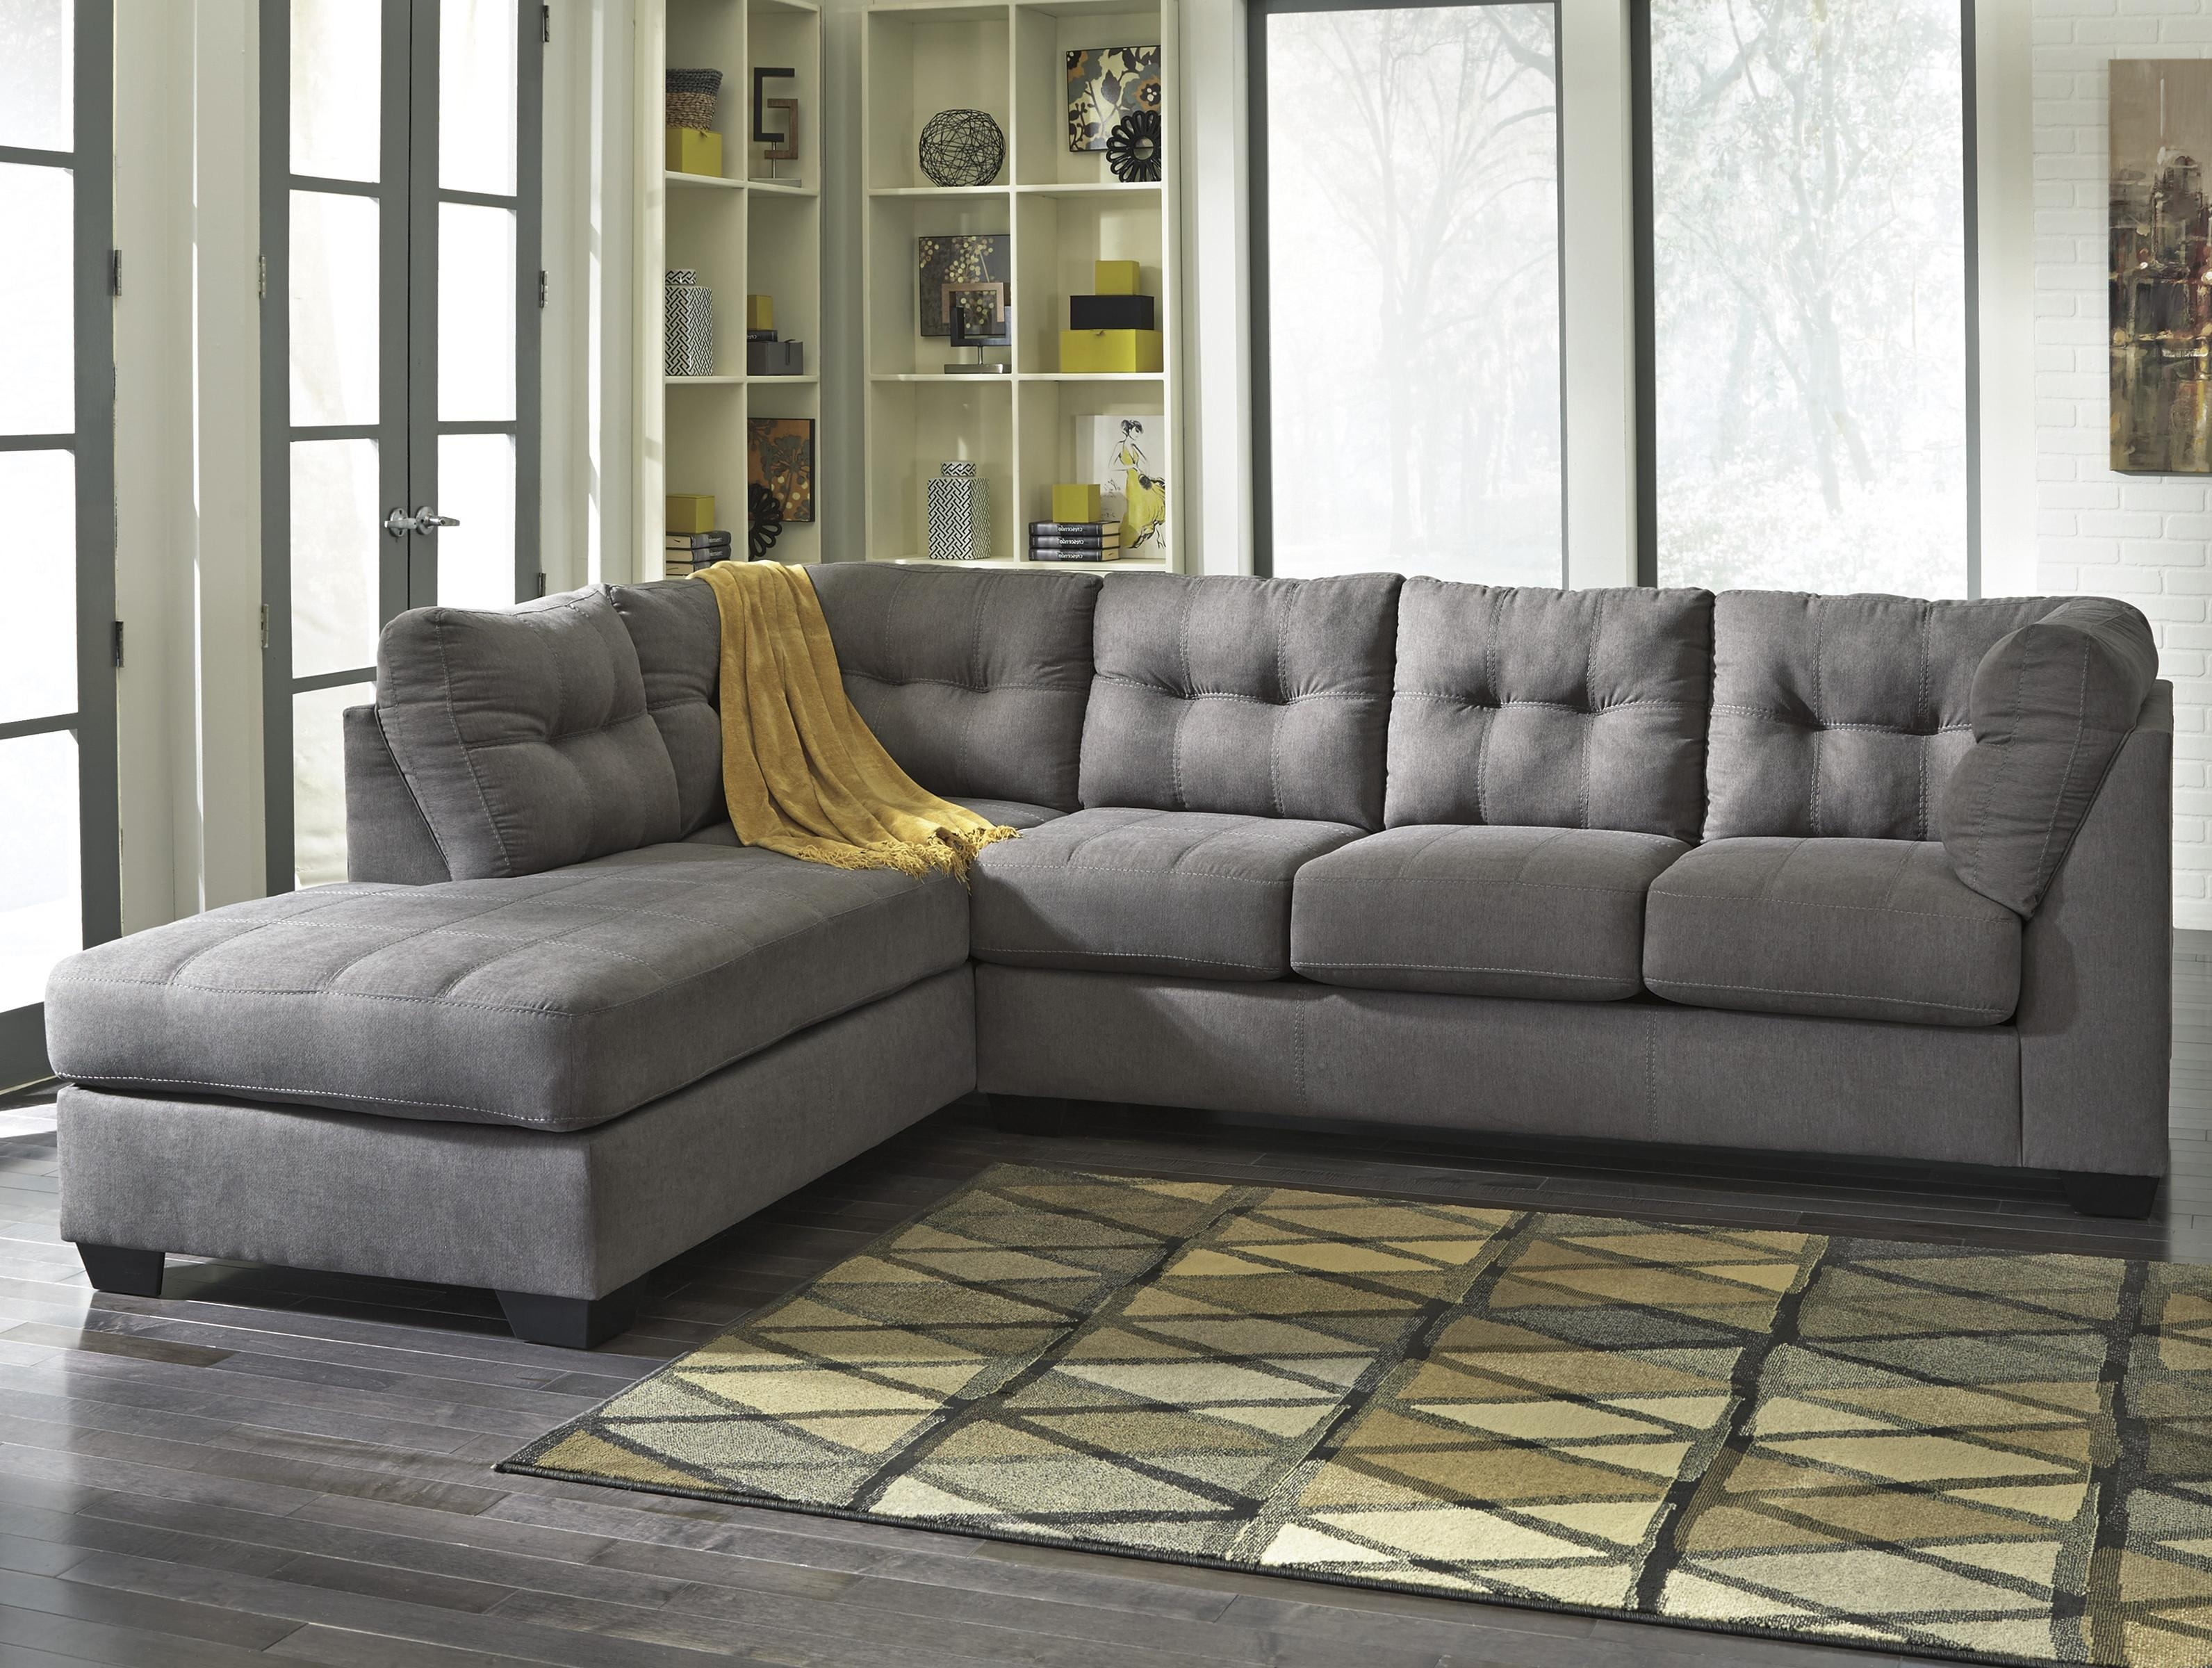 Furniture : Sofa With Two Chaise Tufted Sofa For Sale Sofa Bed In Lubbock Sectional Sofas (View 4 of 10)